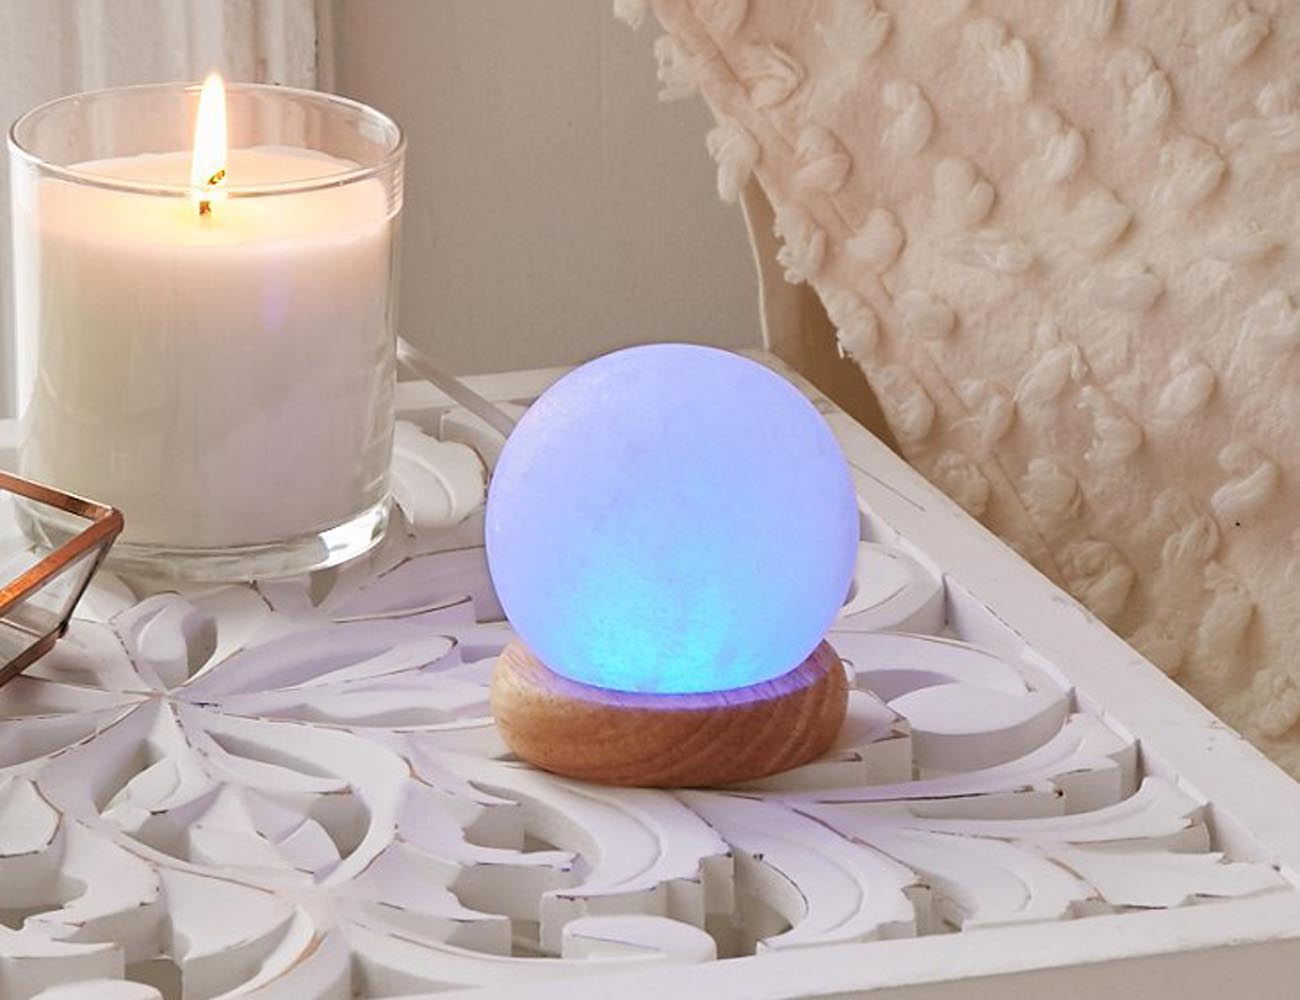 Breathe - The Meditation Lamp